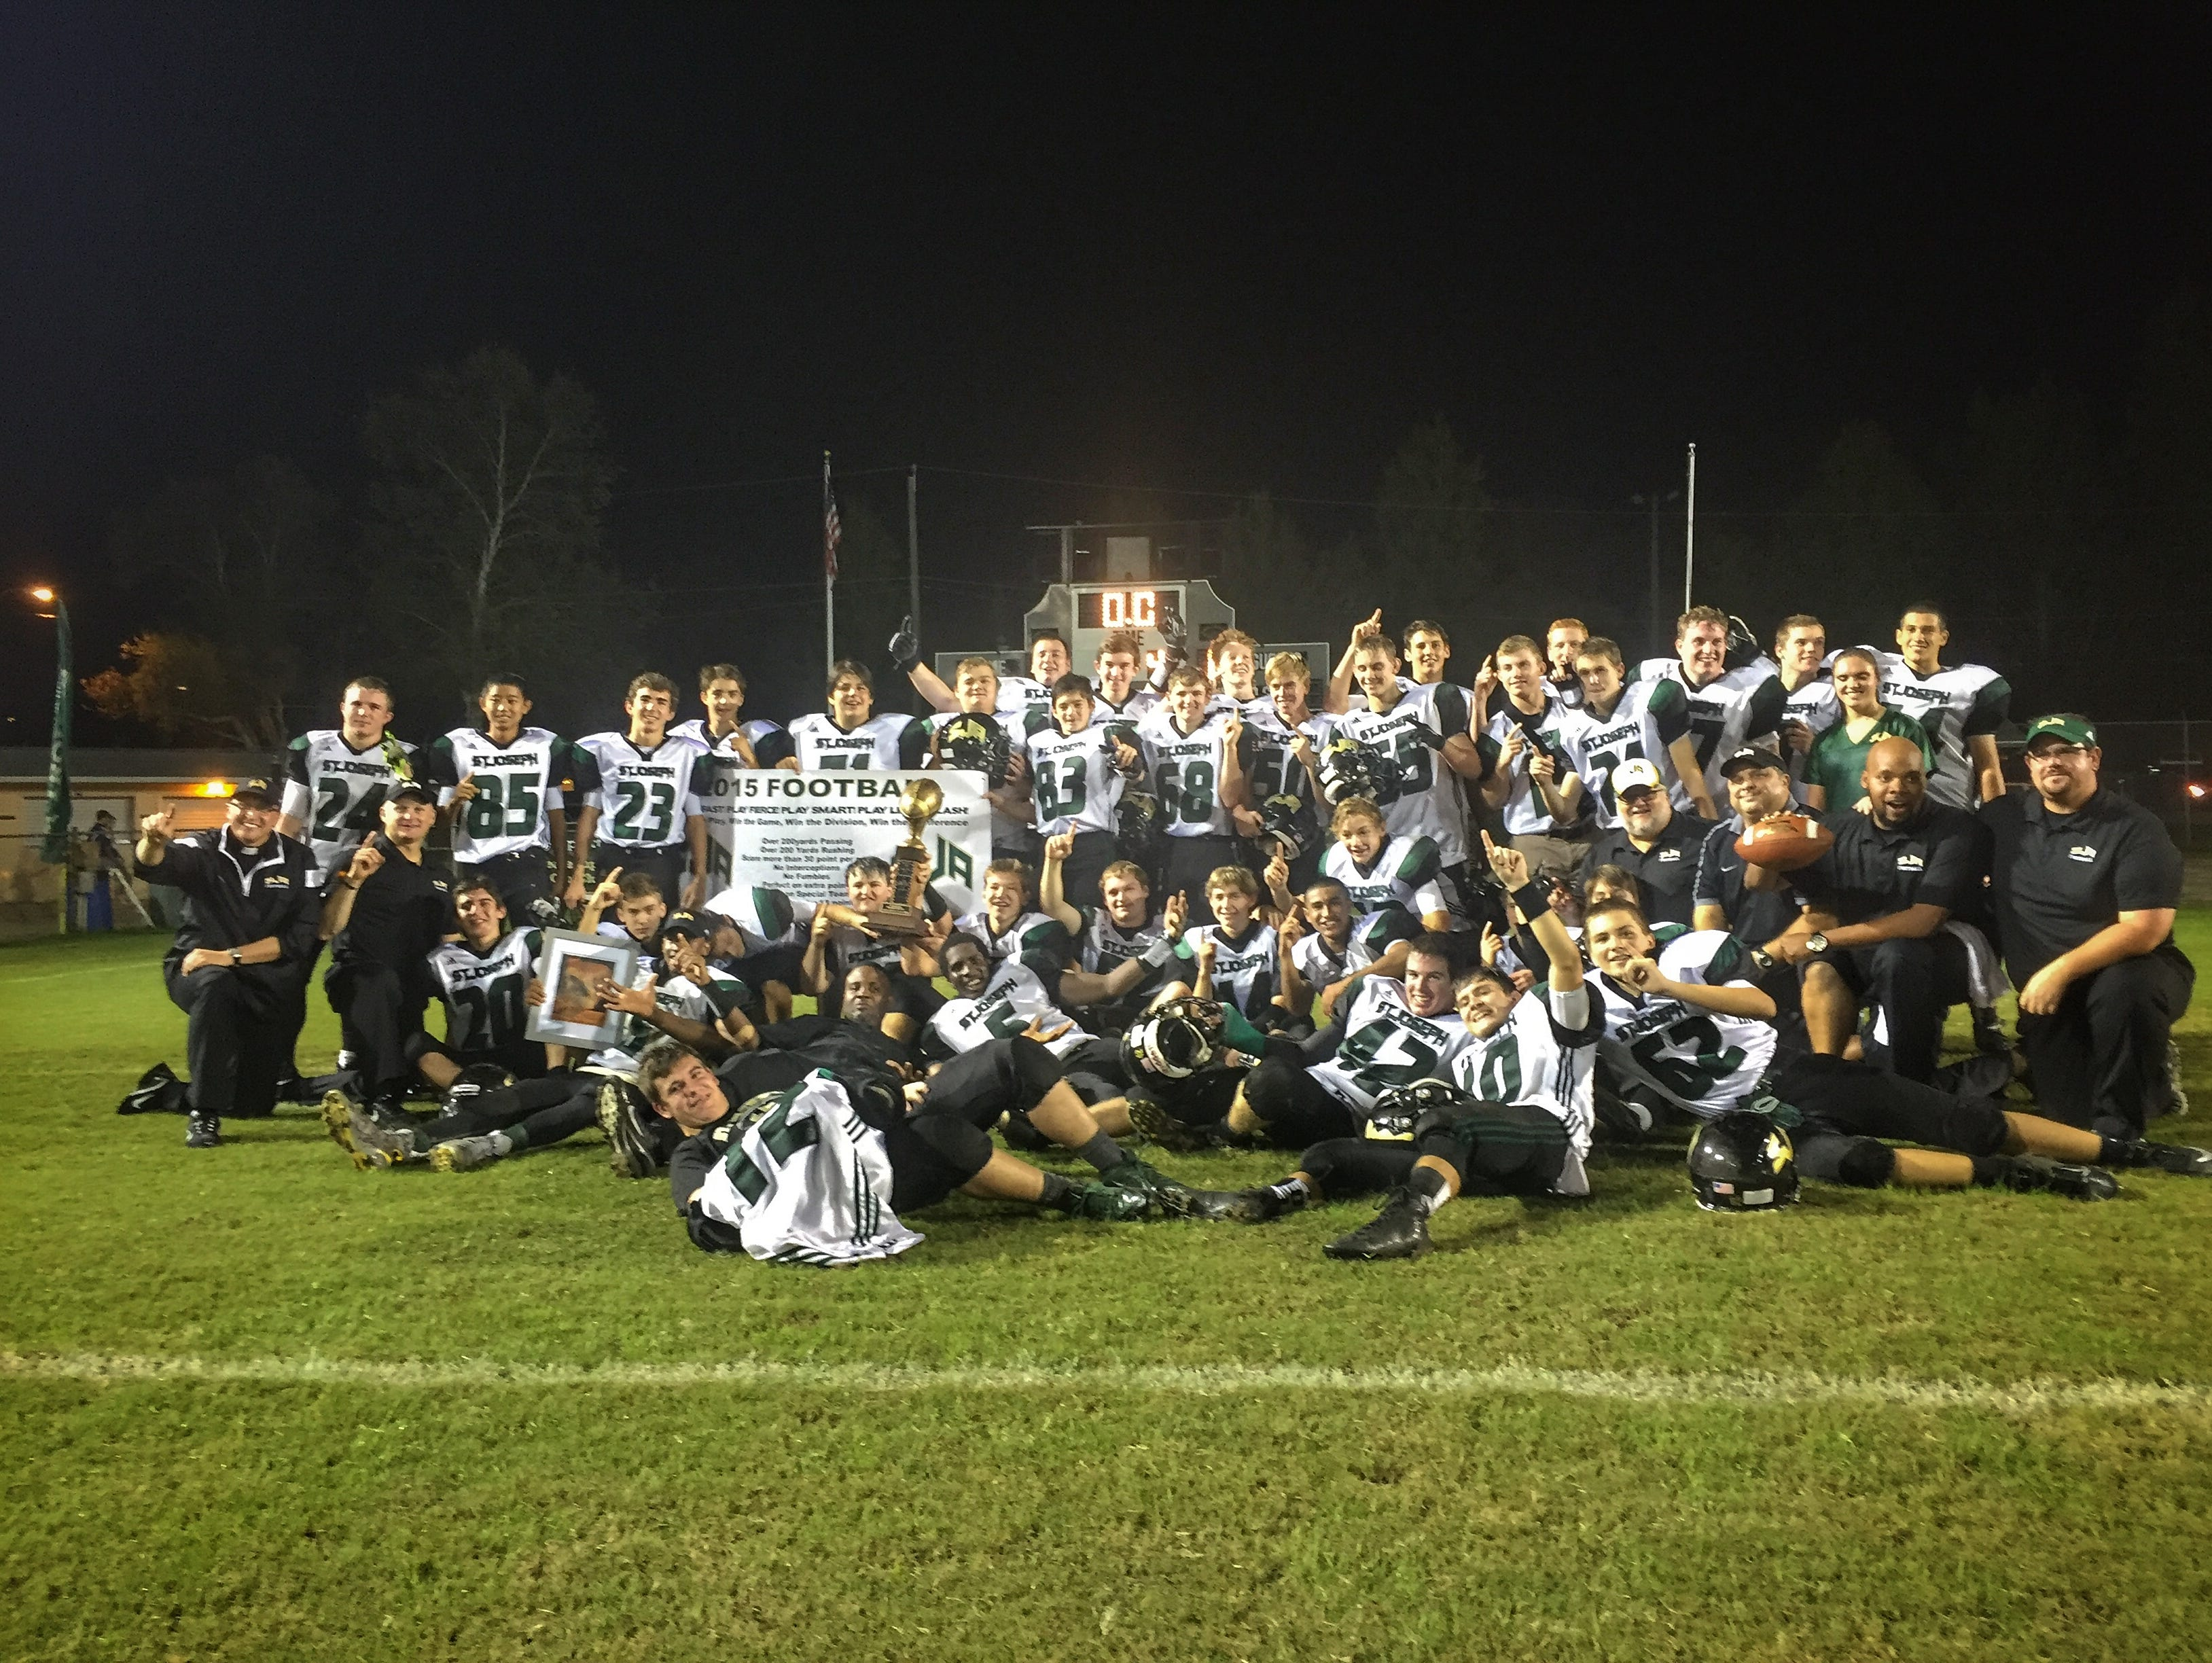 St. Joseph Academy capped a perfect 10-0 season with an NFFC title on Thursday night, beating John Paul II, 10-0.